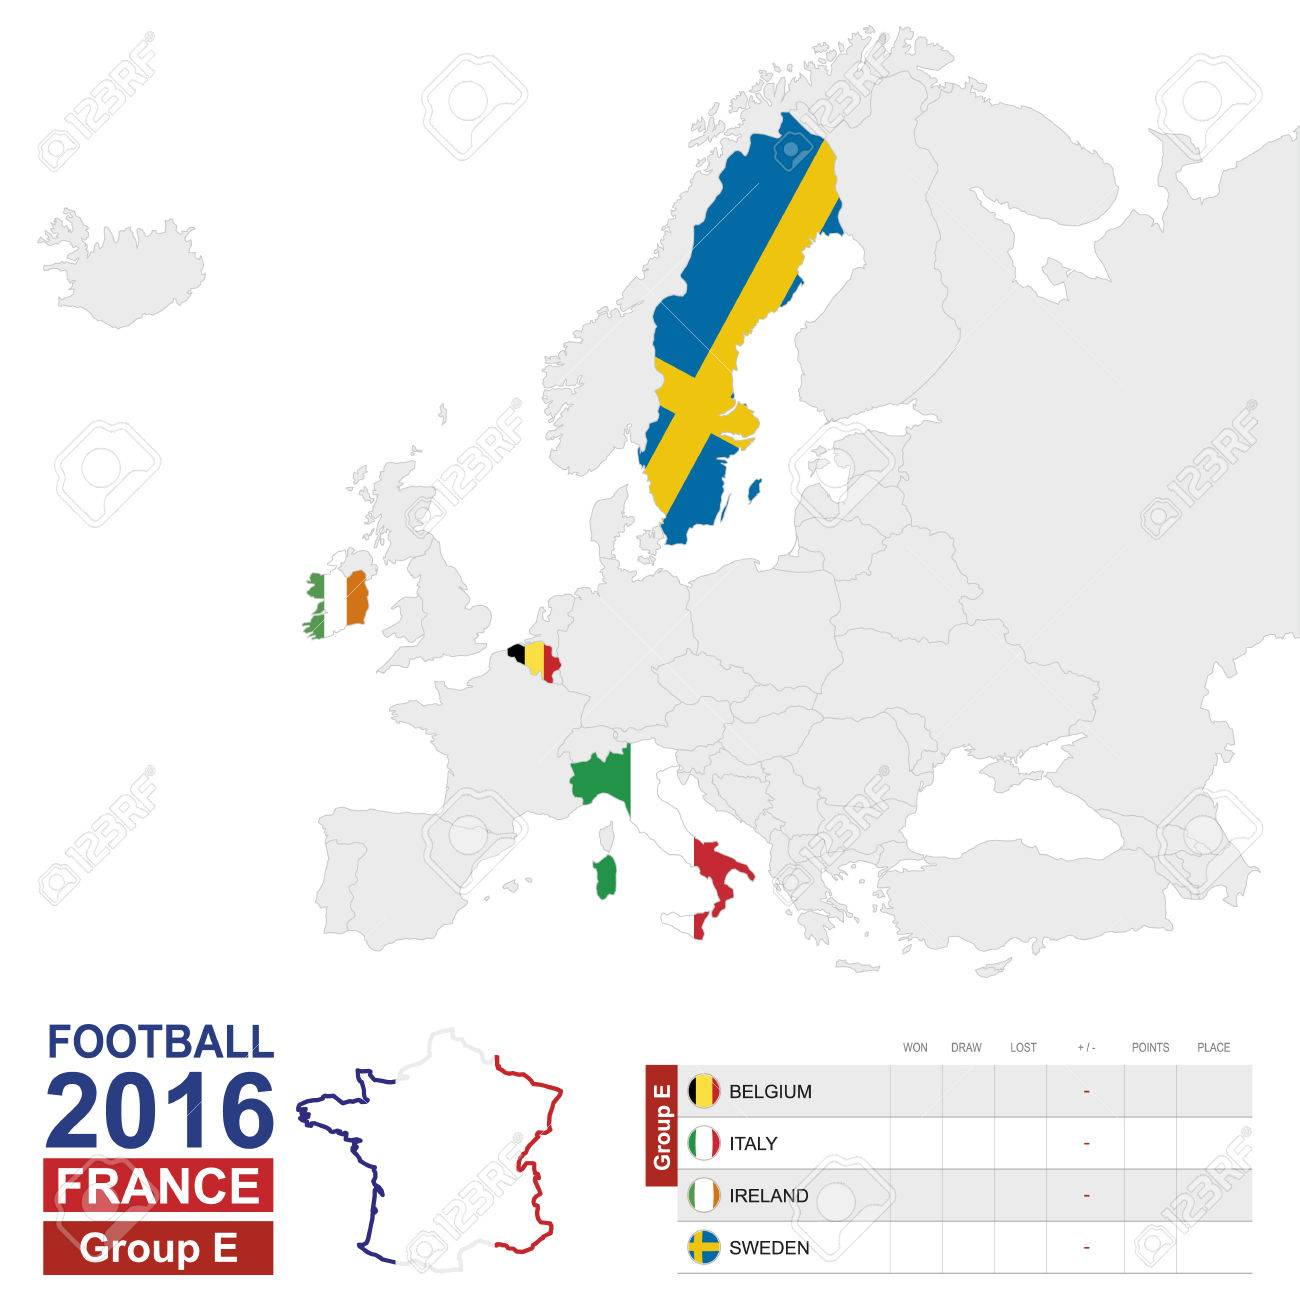 Football 2016 Group E Table Group E Highlighted On Europe Map